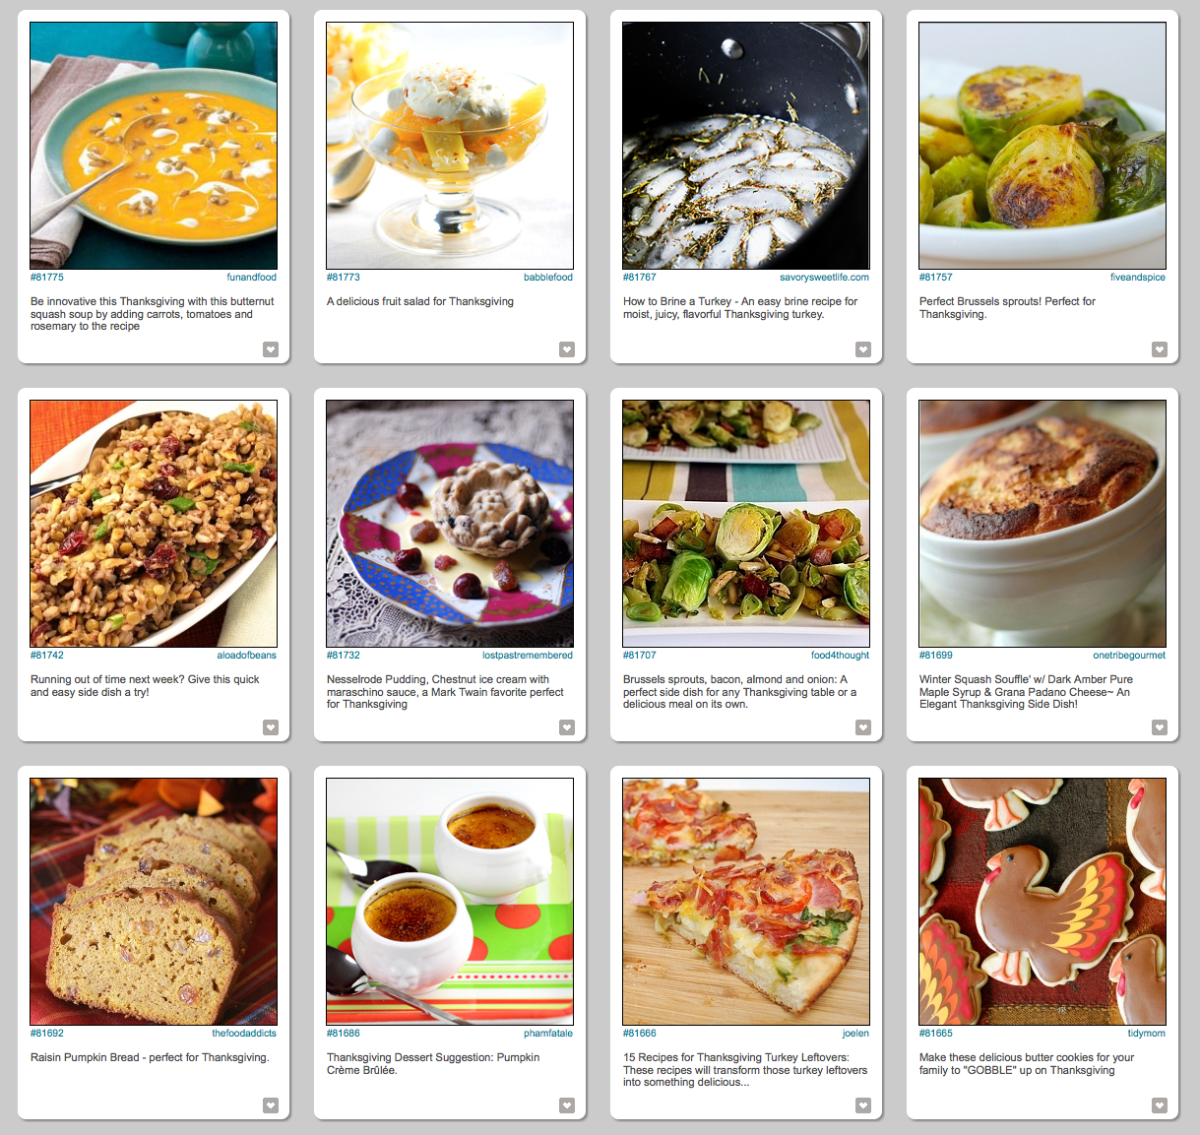 Photo search options for Thanksgiving food on FoodGawker.com